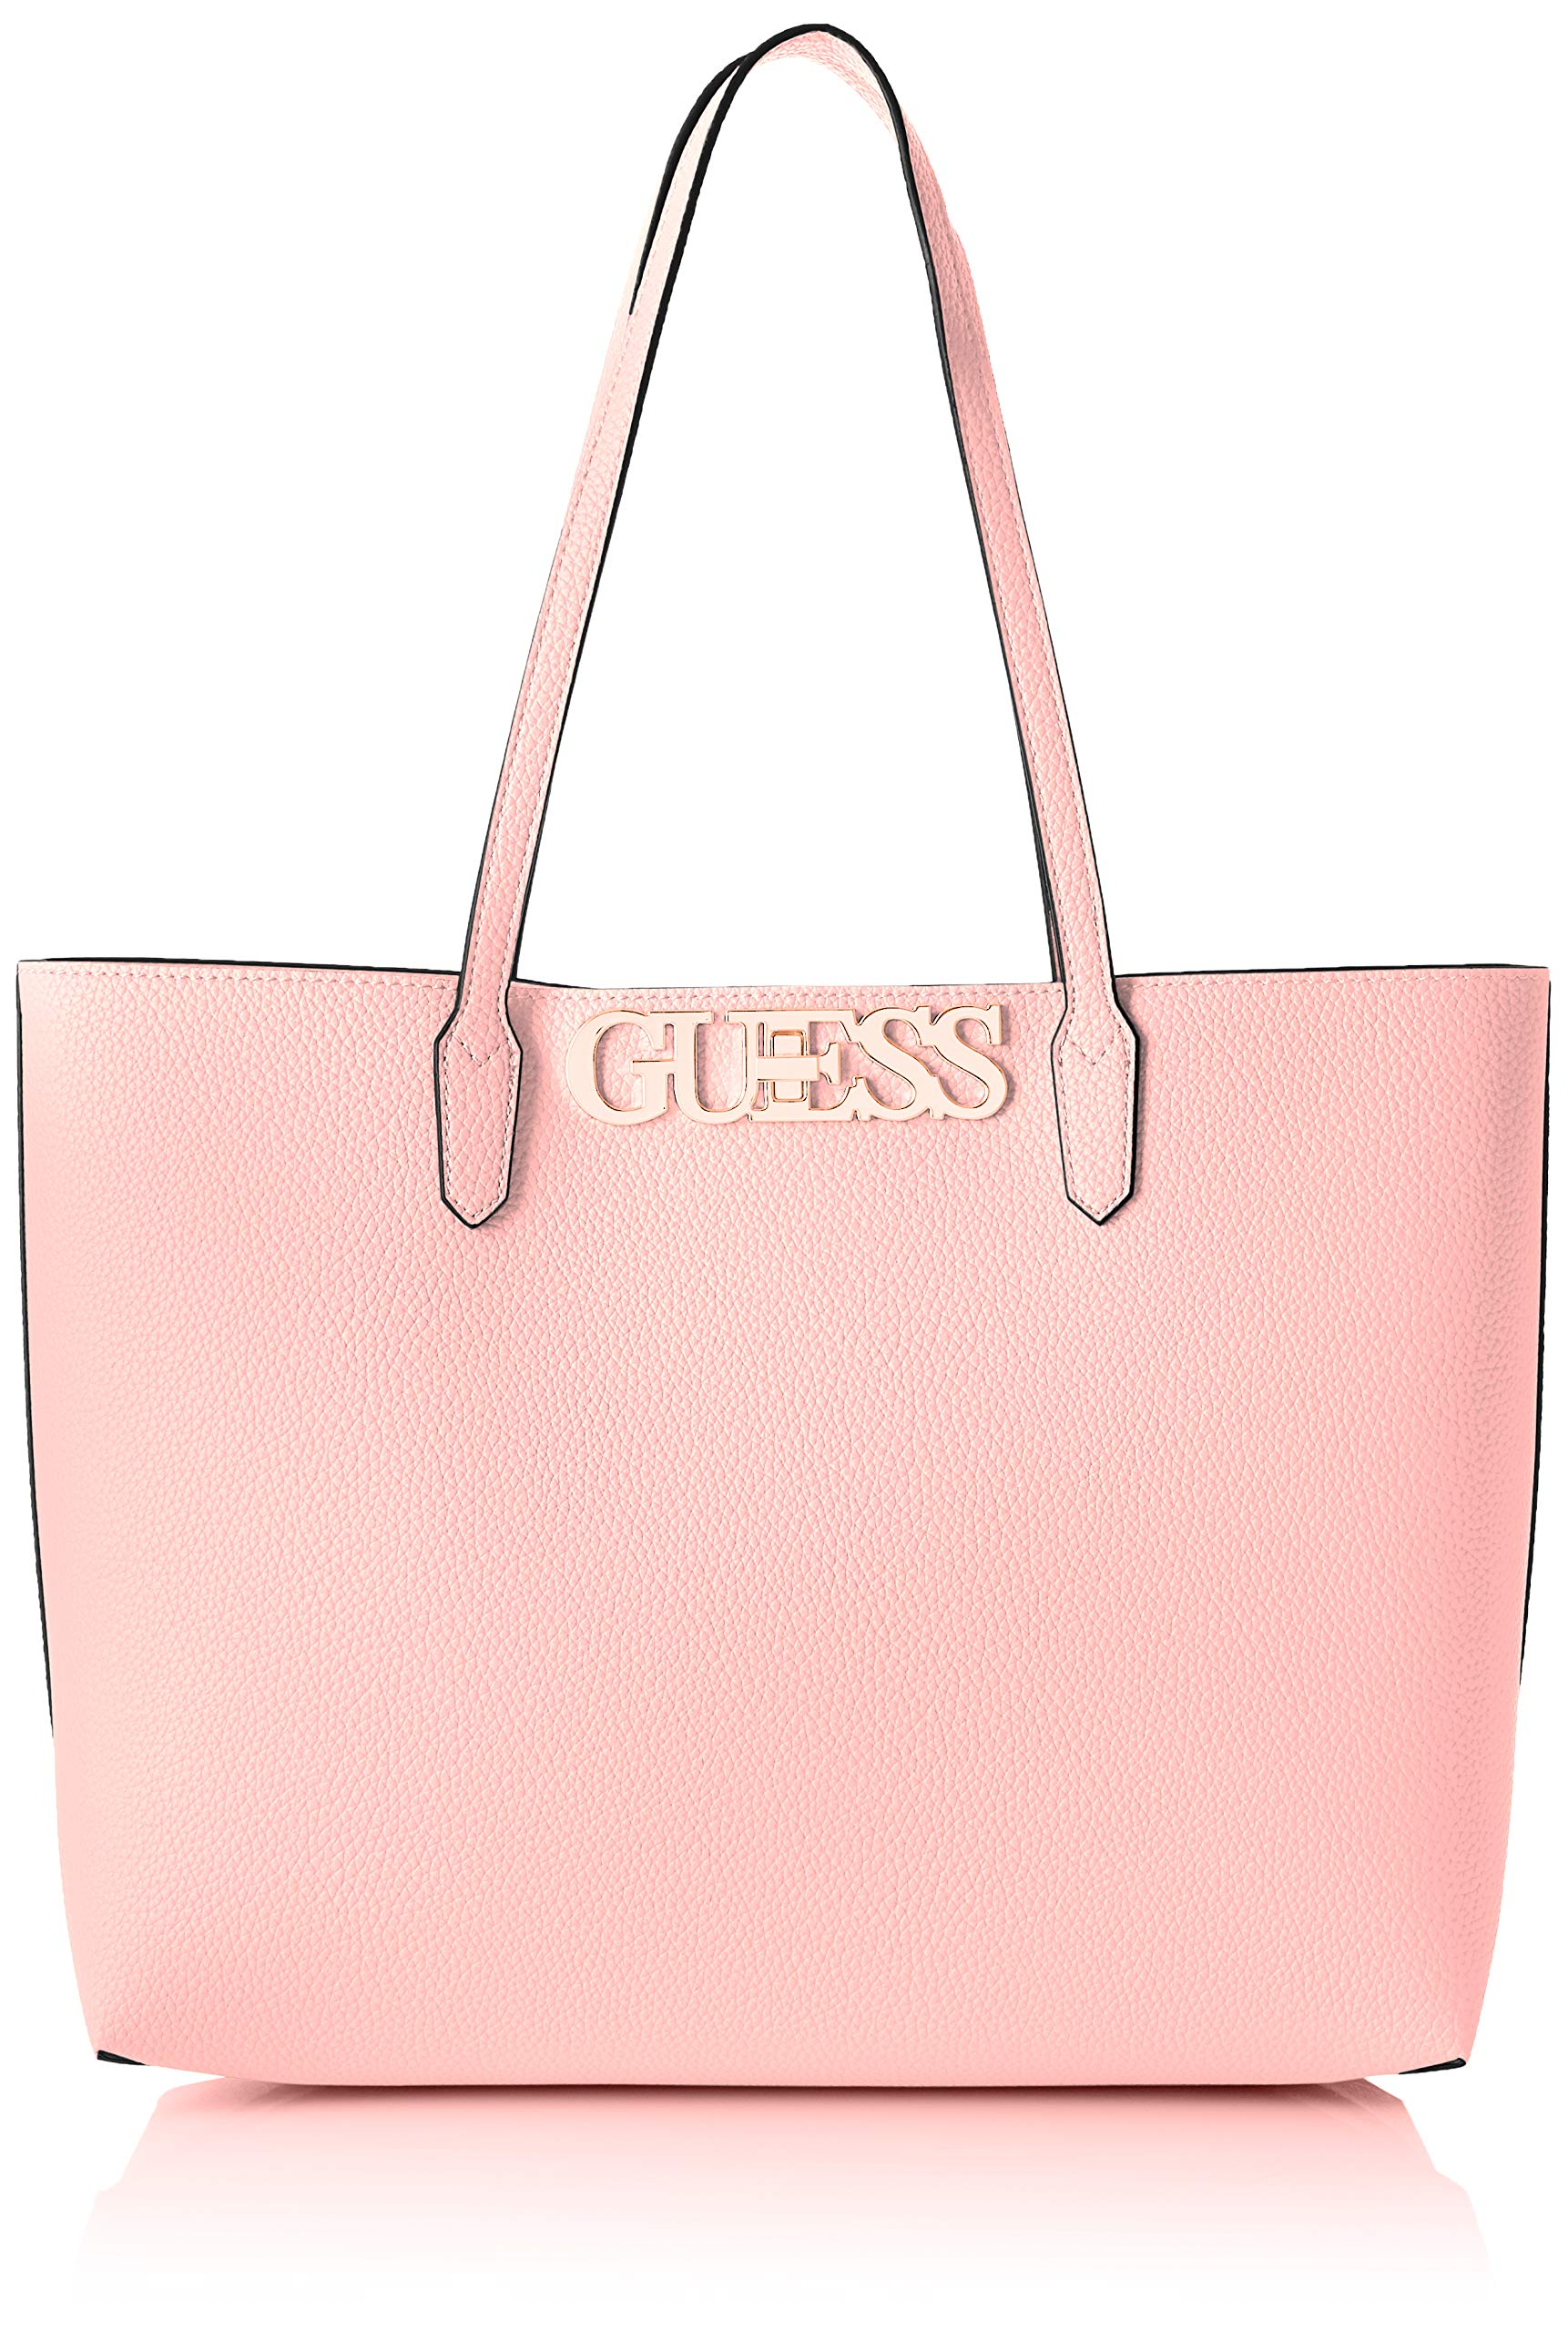 GUESS Uptown Chic Barcelona Tote, Rose